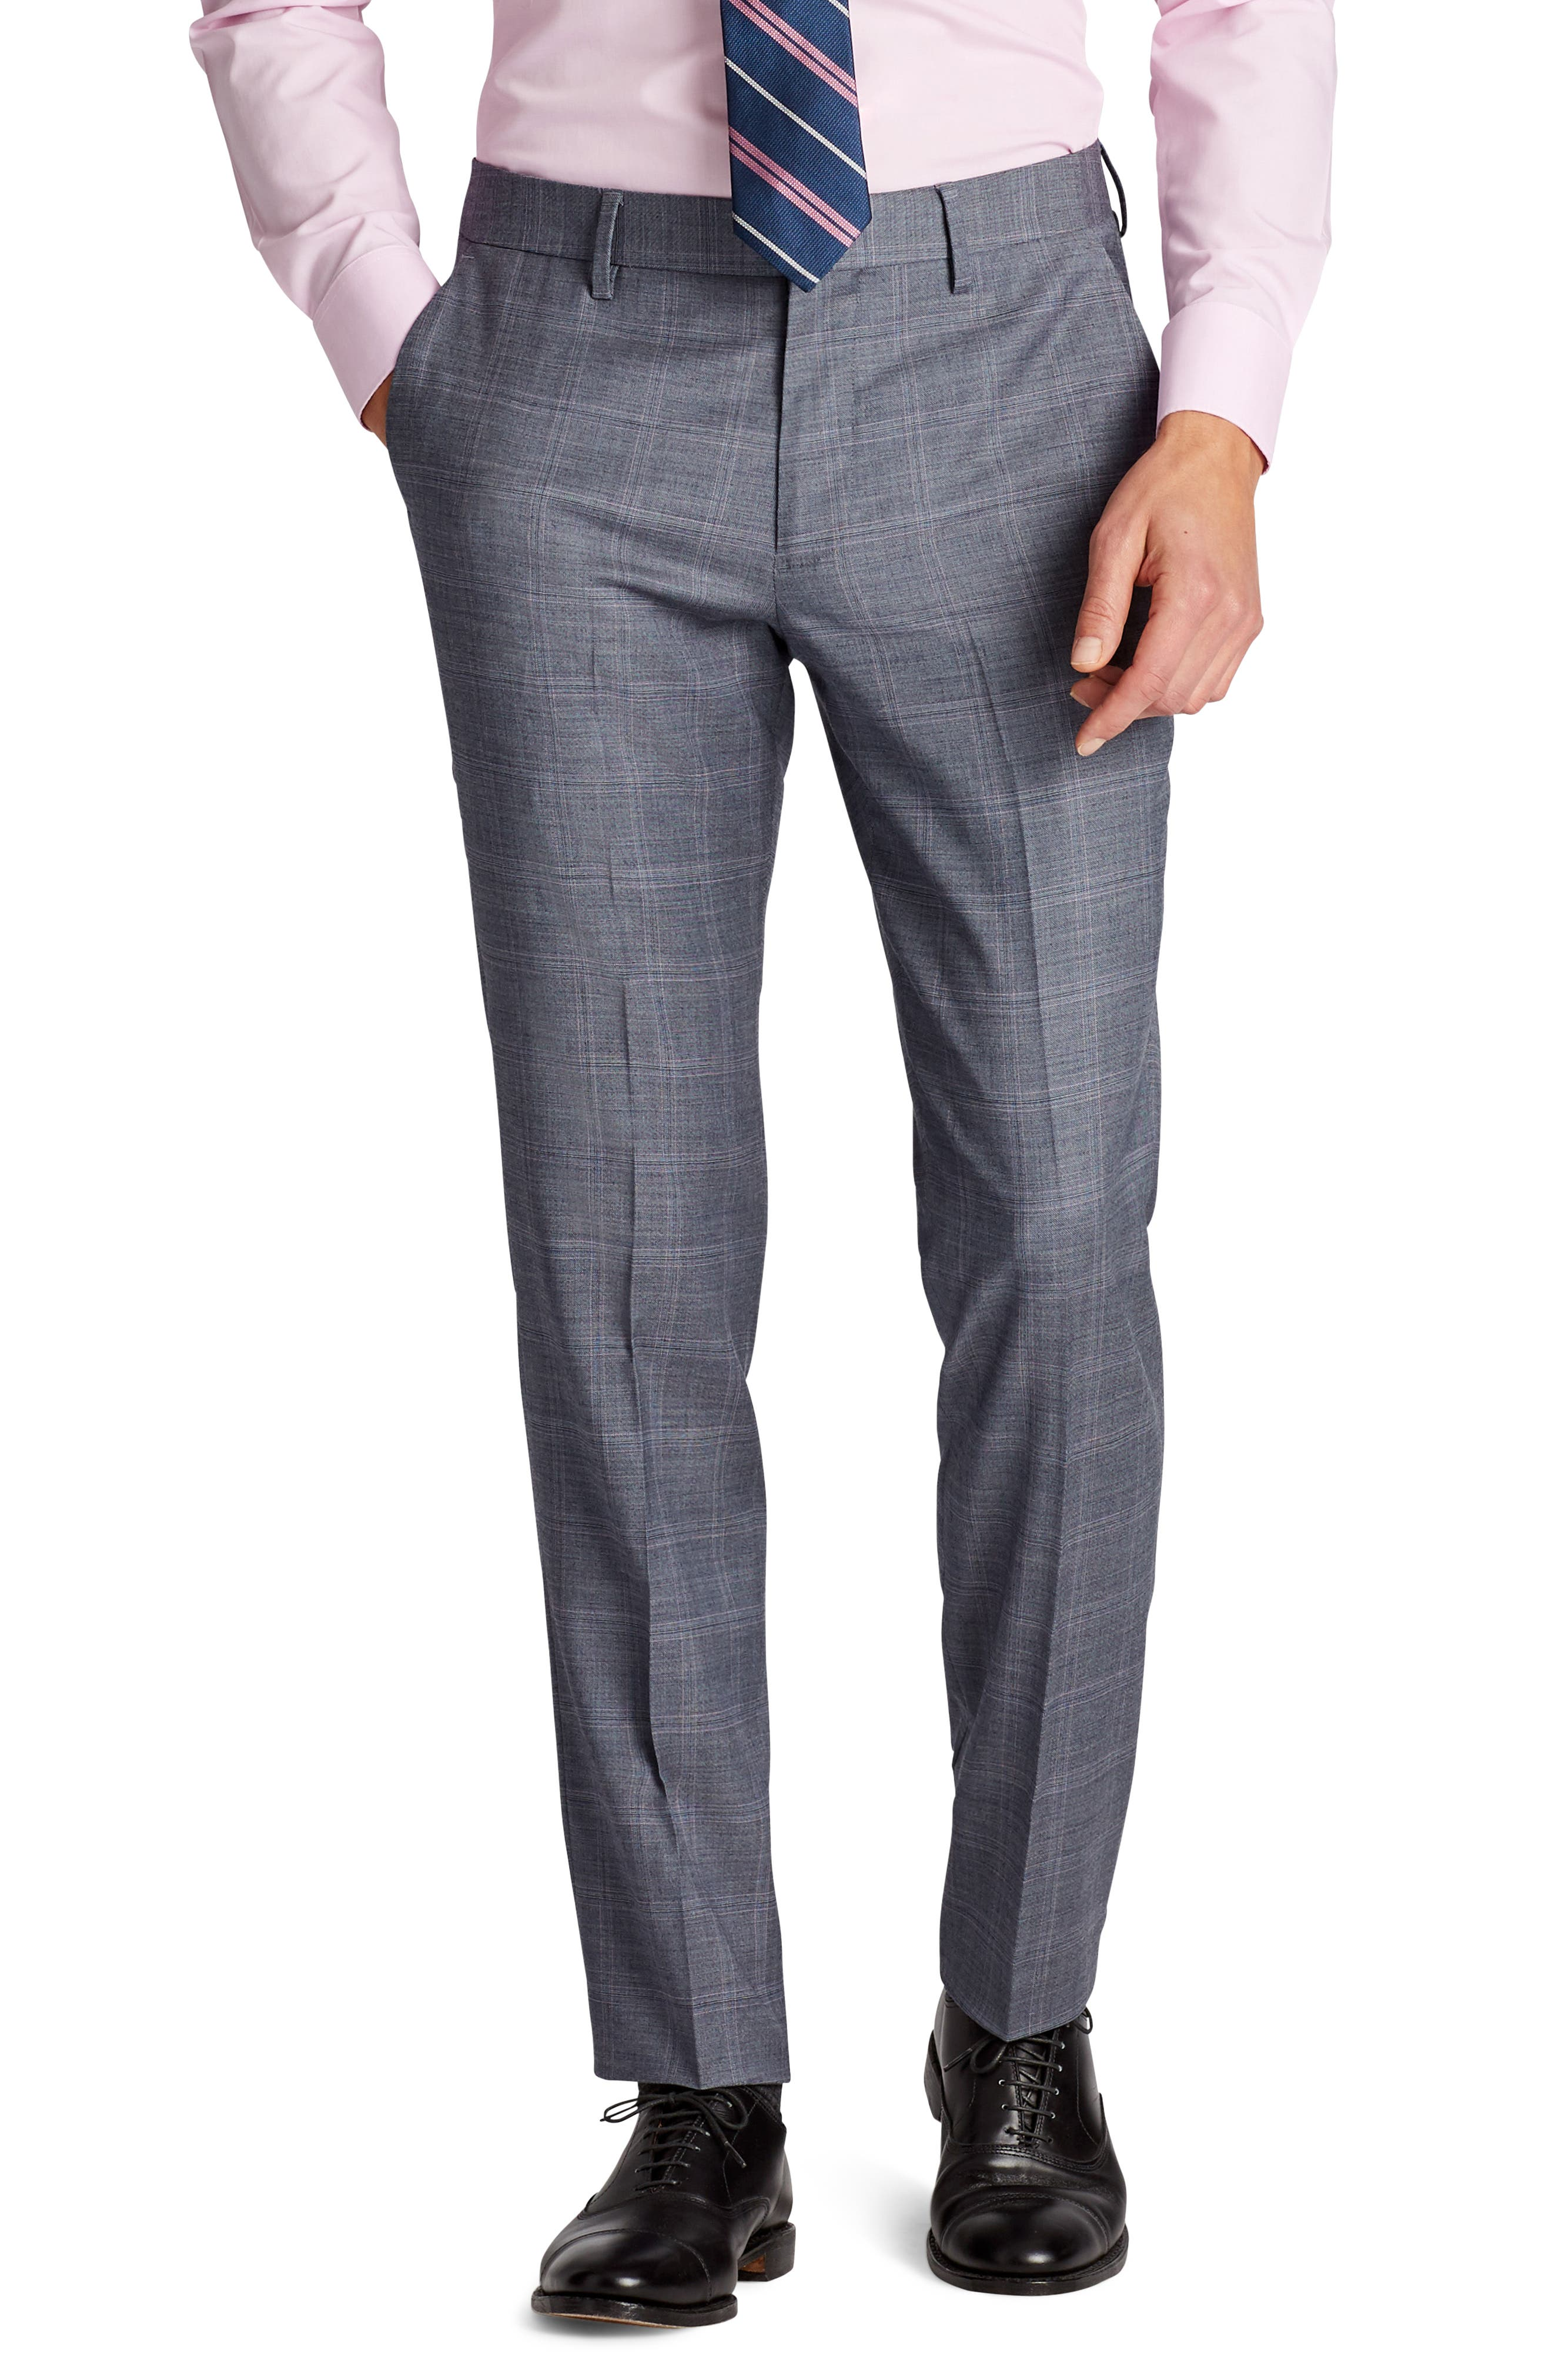 Jetsetter Flat Front Stretch Plaid Wool Trousers,                             Main thumbnail 1, color,                             Grey Plaid